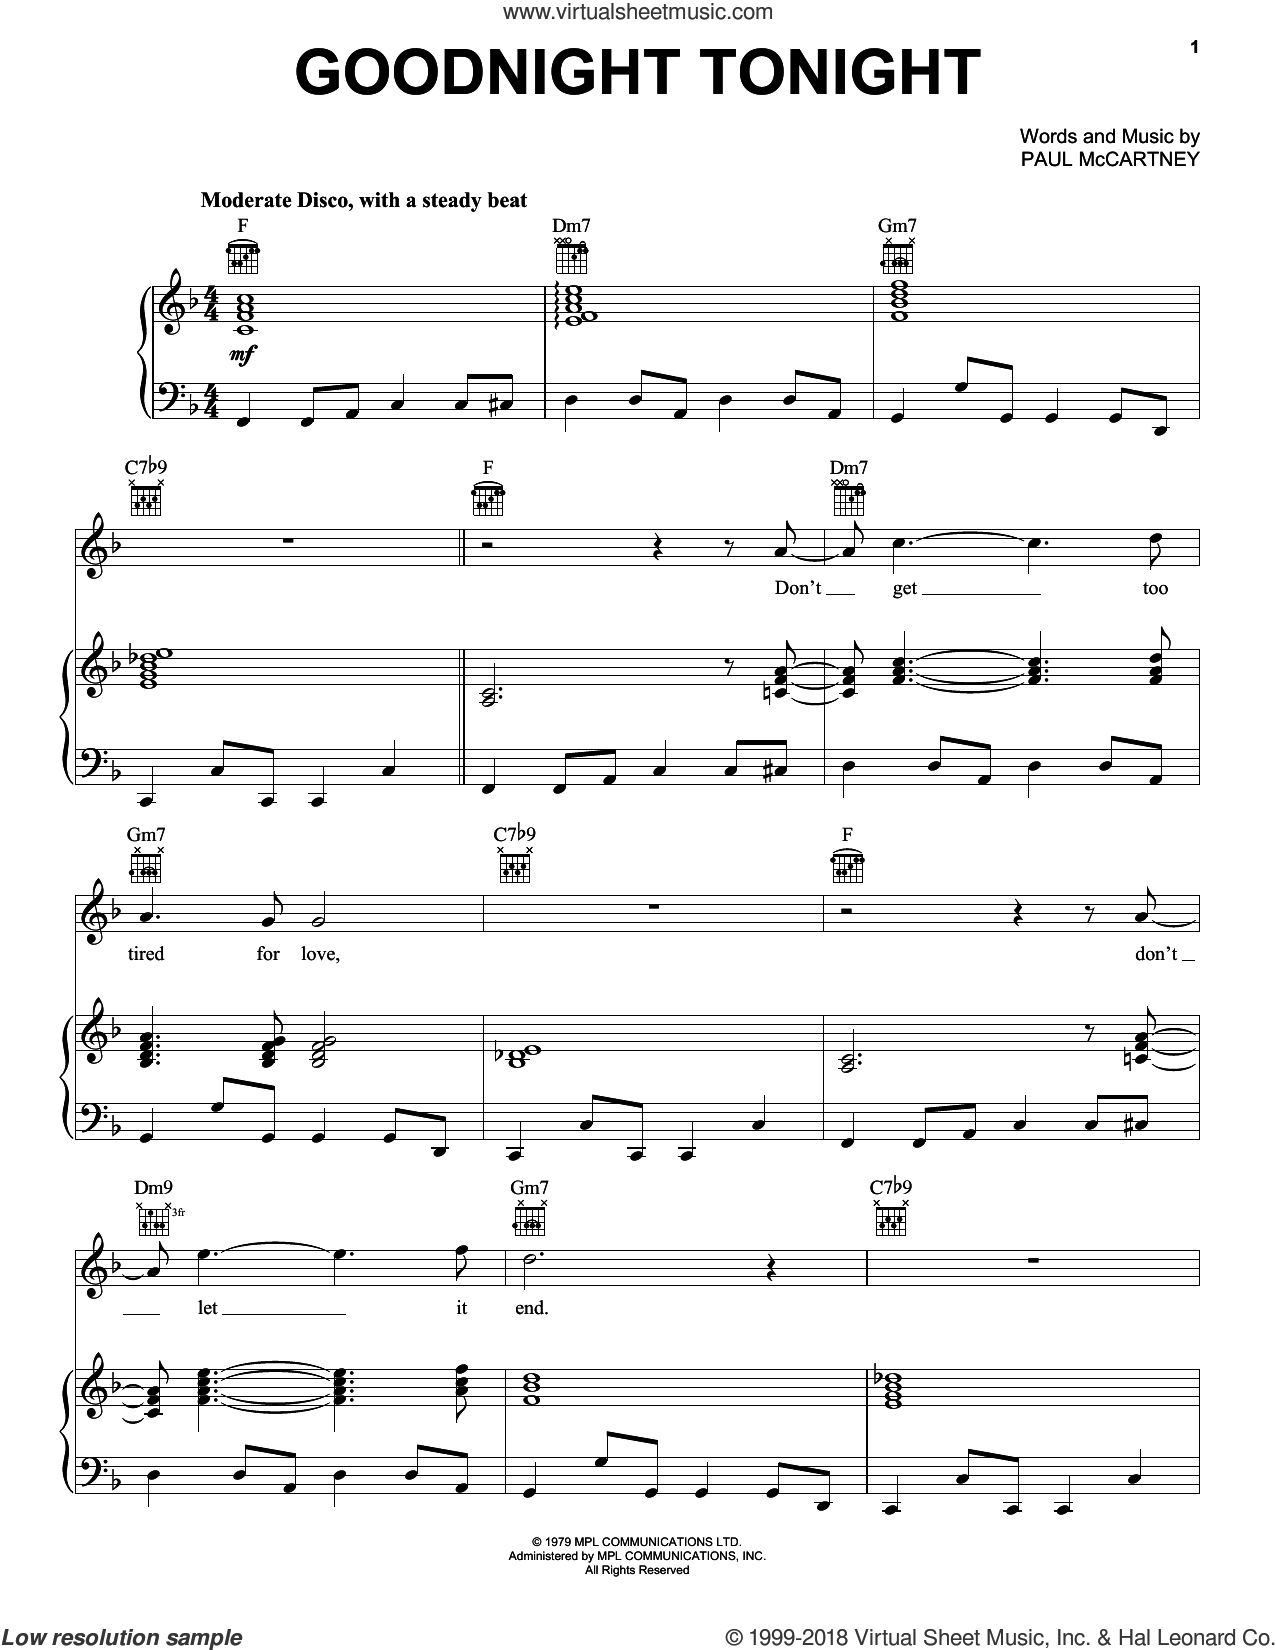 Goodnight Tonight sheet music for voice, piano or guitar by Paul McCartney and Paul McCartney and Wings, intermediate skill level